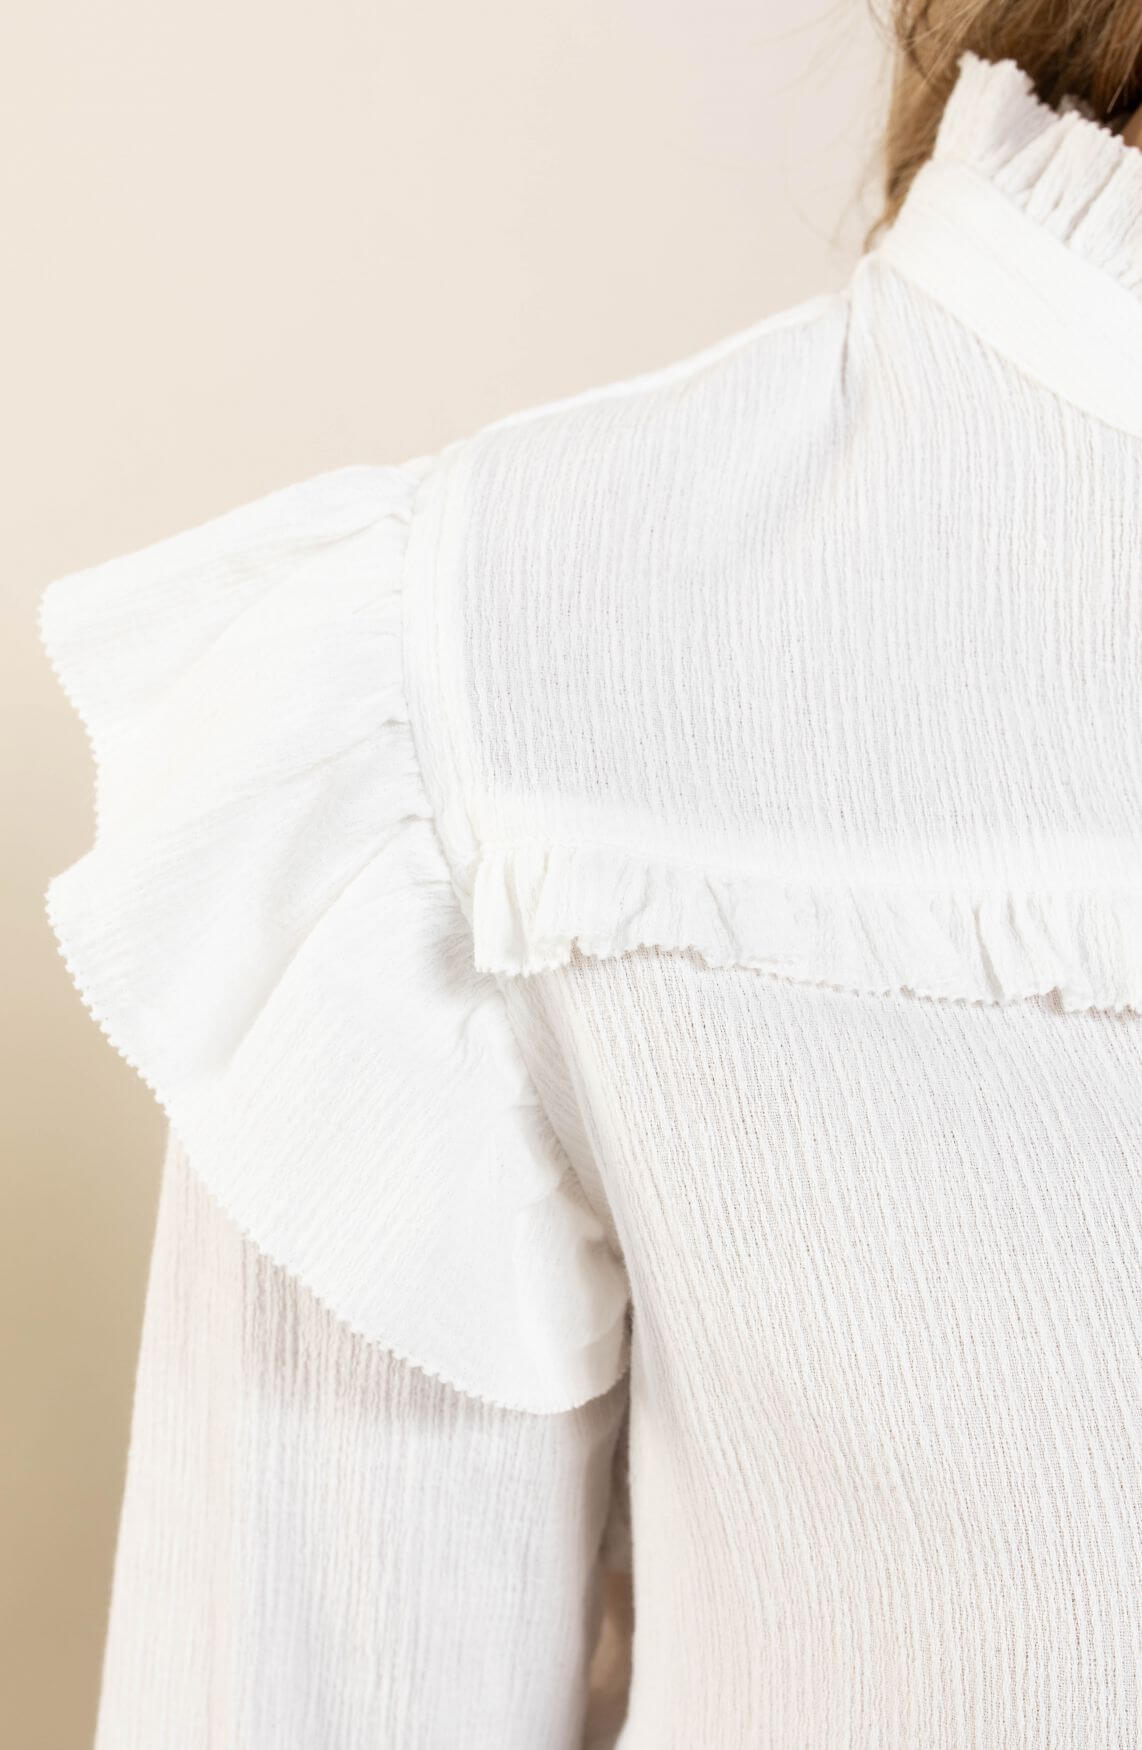 Anna Dames Blouse met ruches Wit